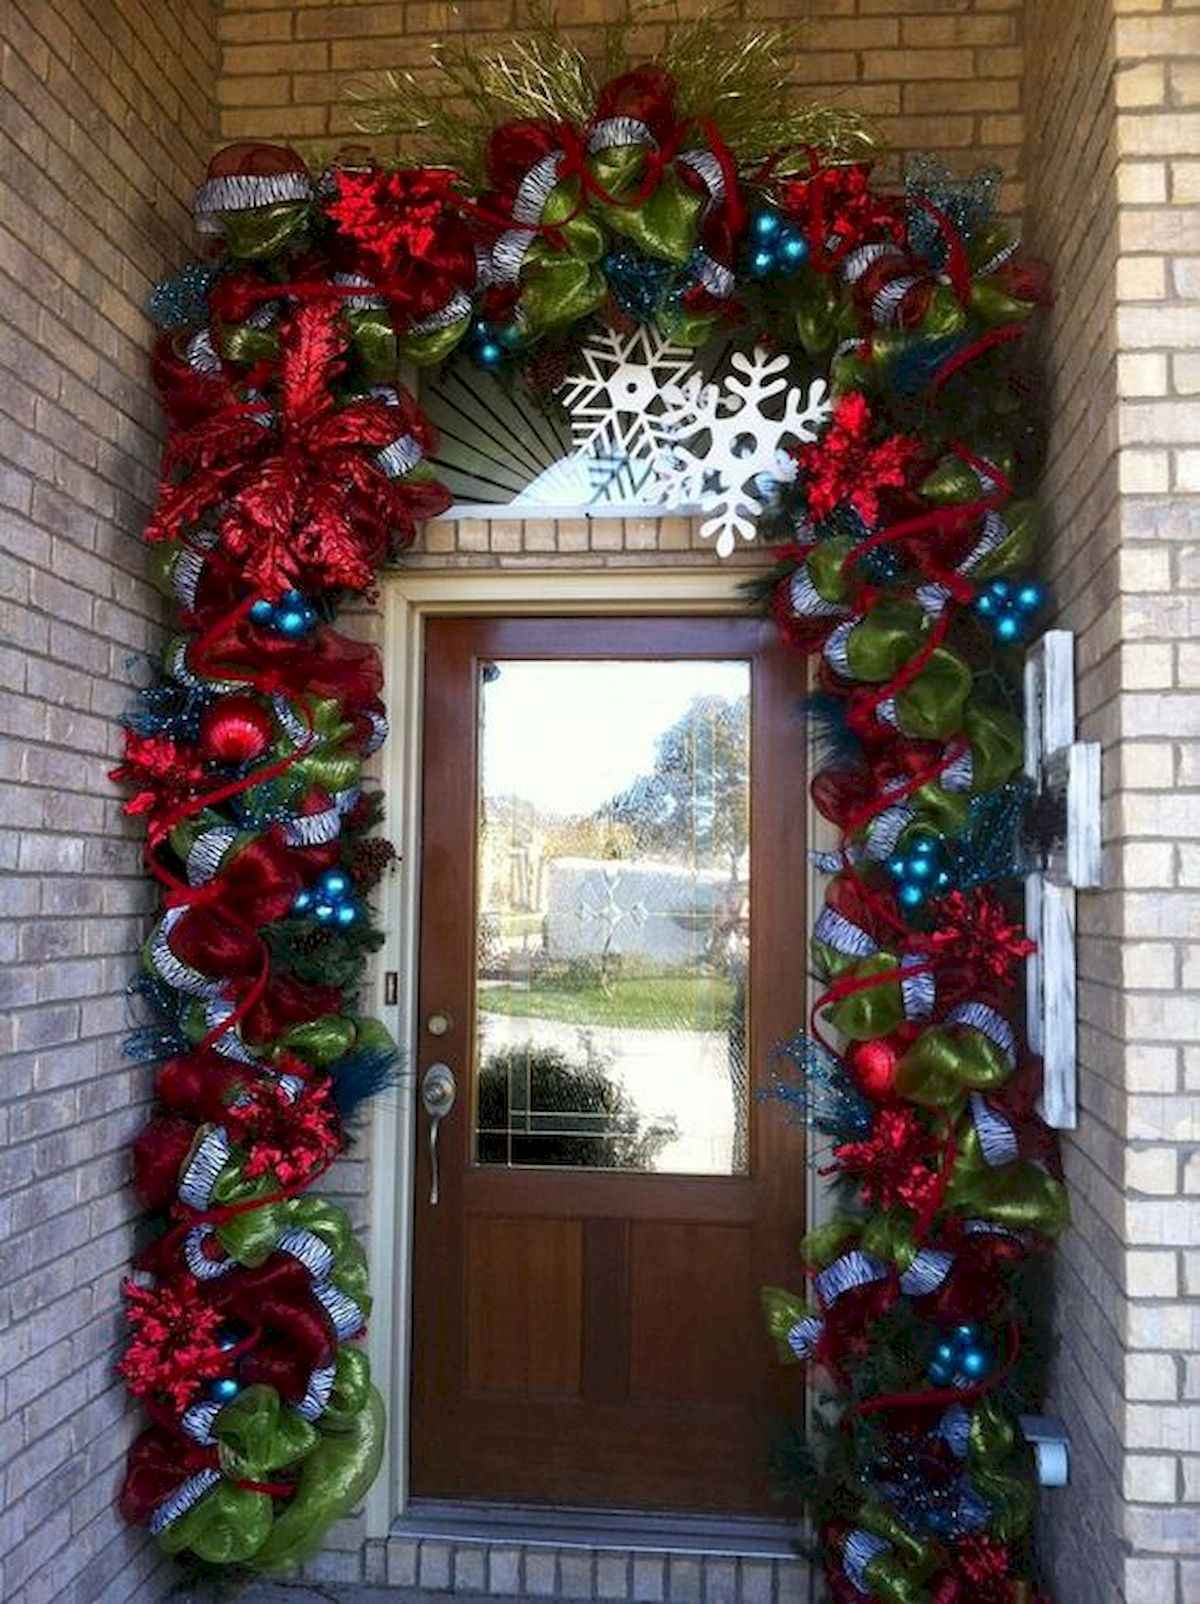 50 stunning front porch christmas lights decorations ideas (14)